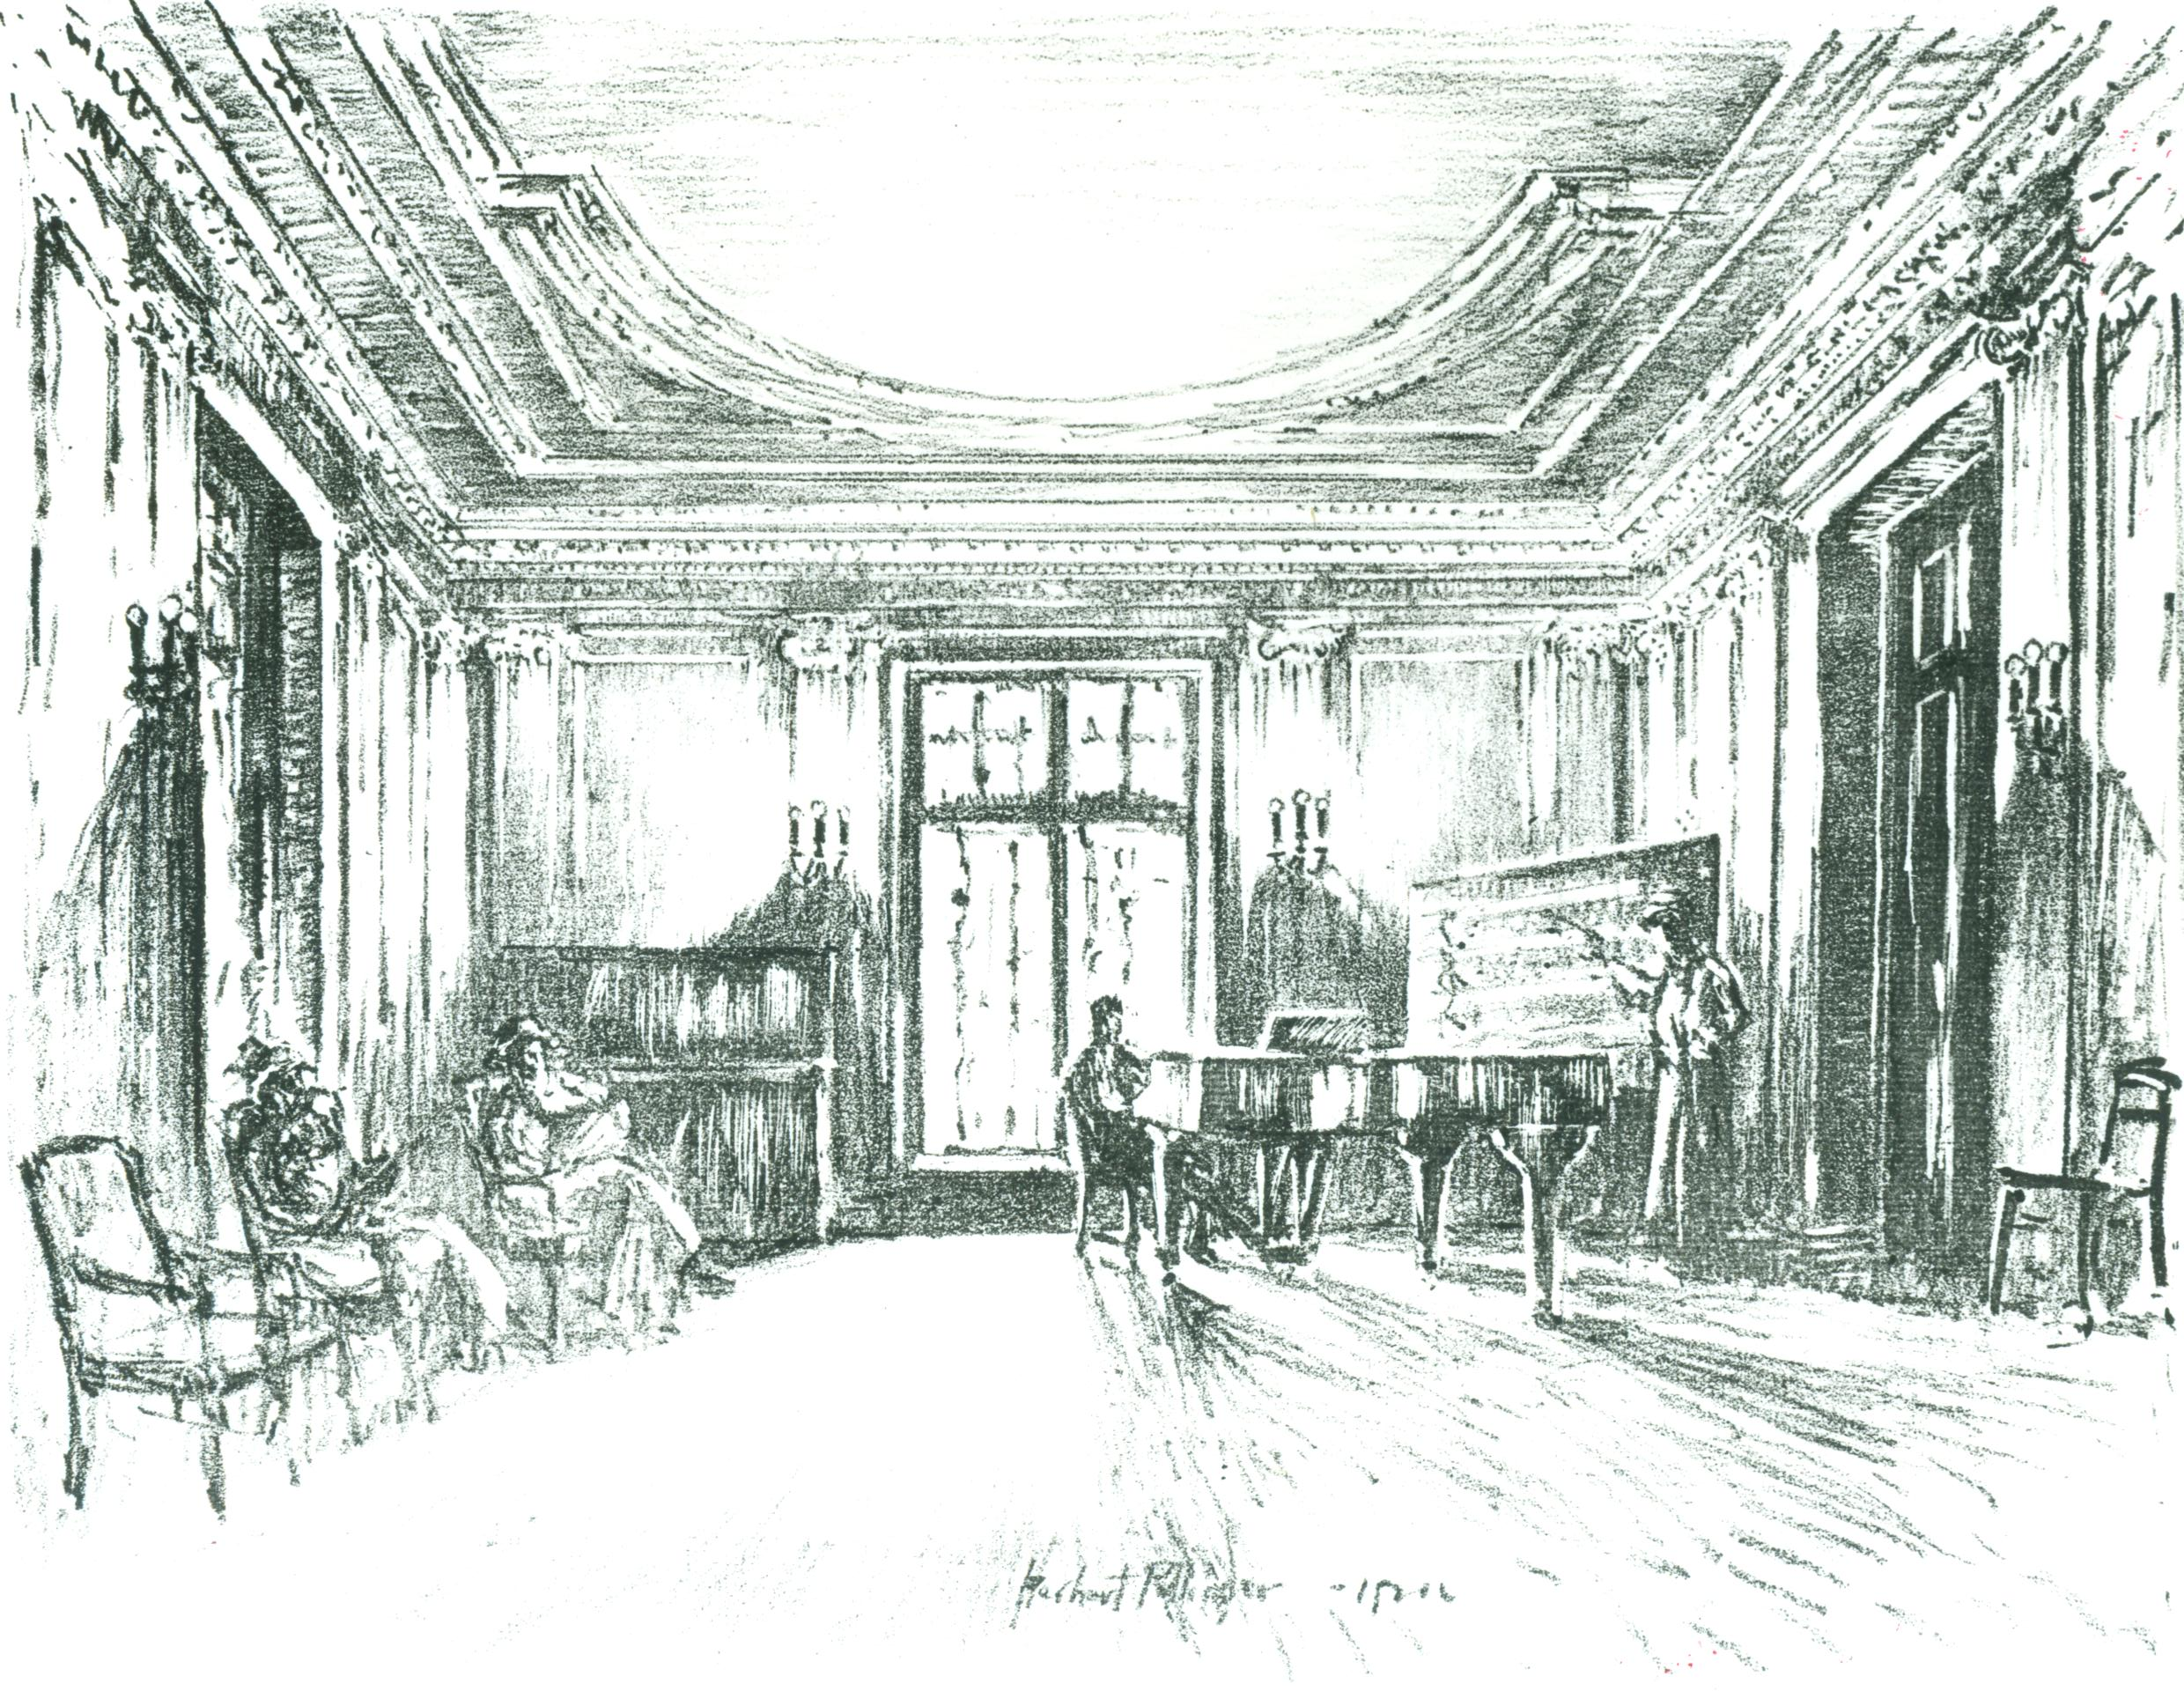 629T Curtis Library; Pollinger etching of Knapp Hall, circa 1925